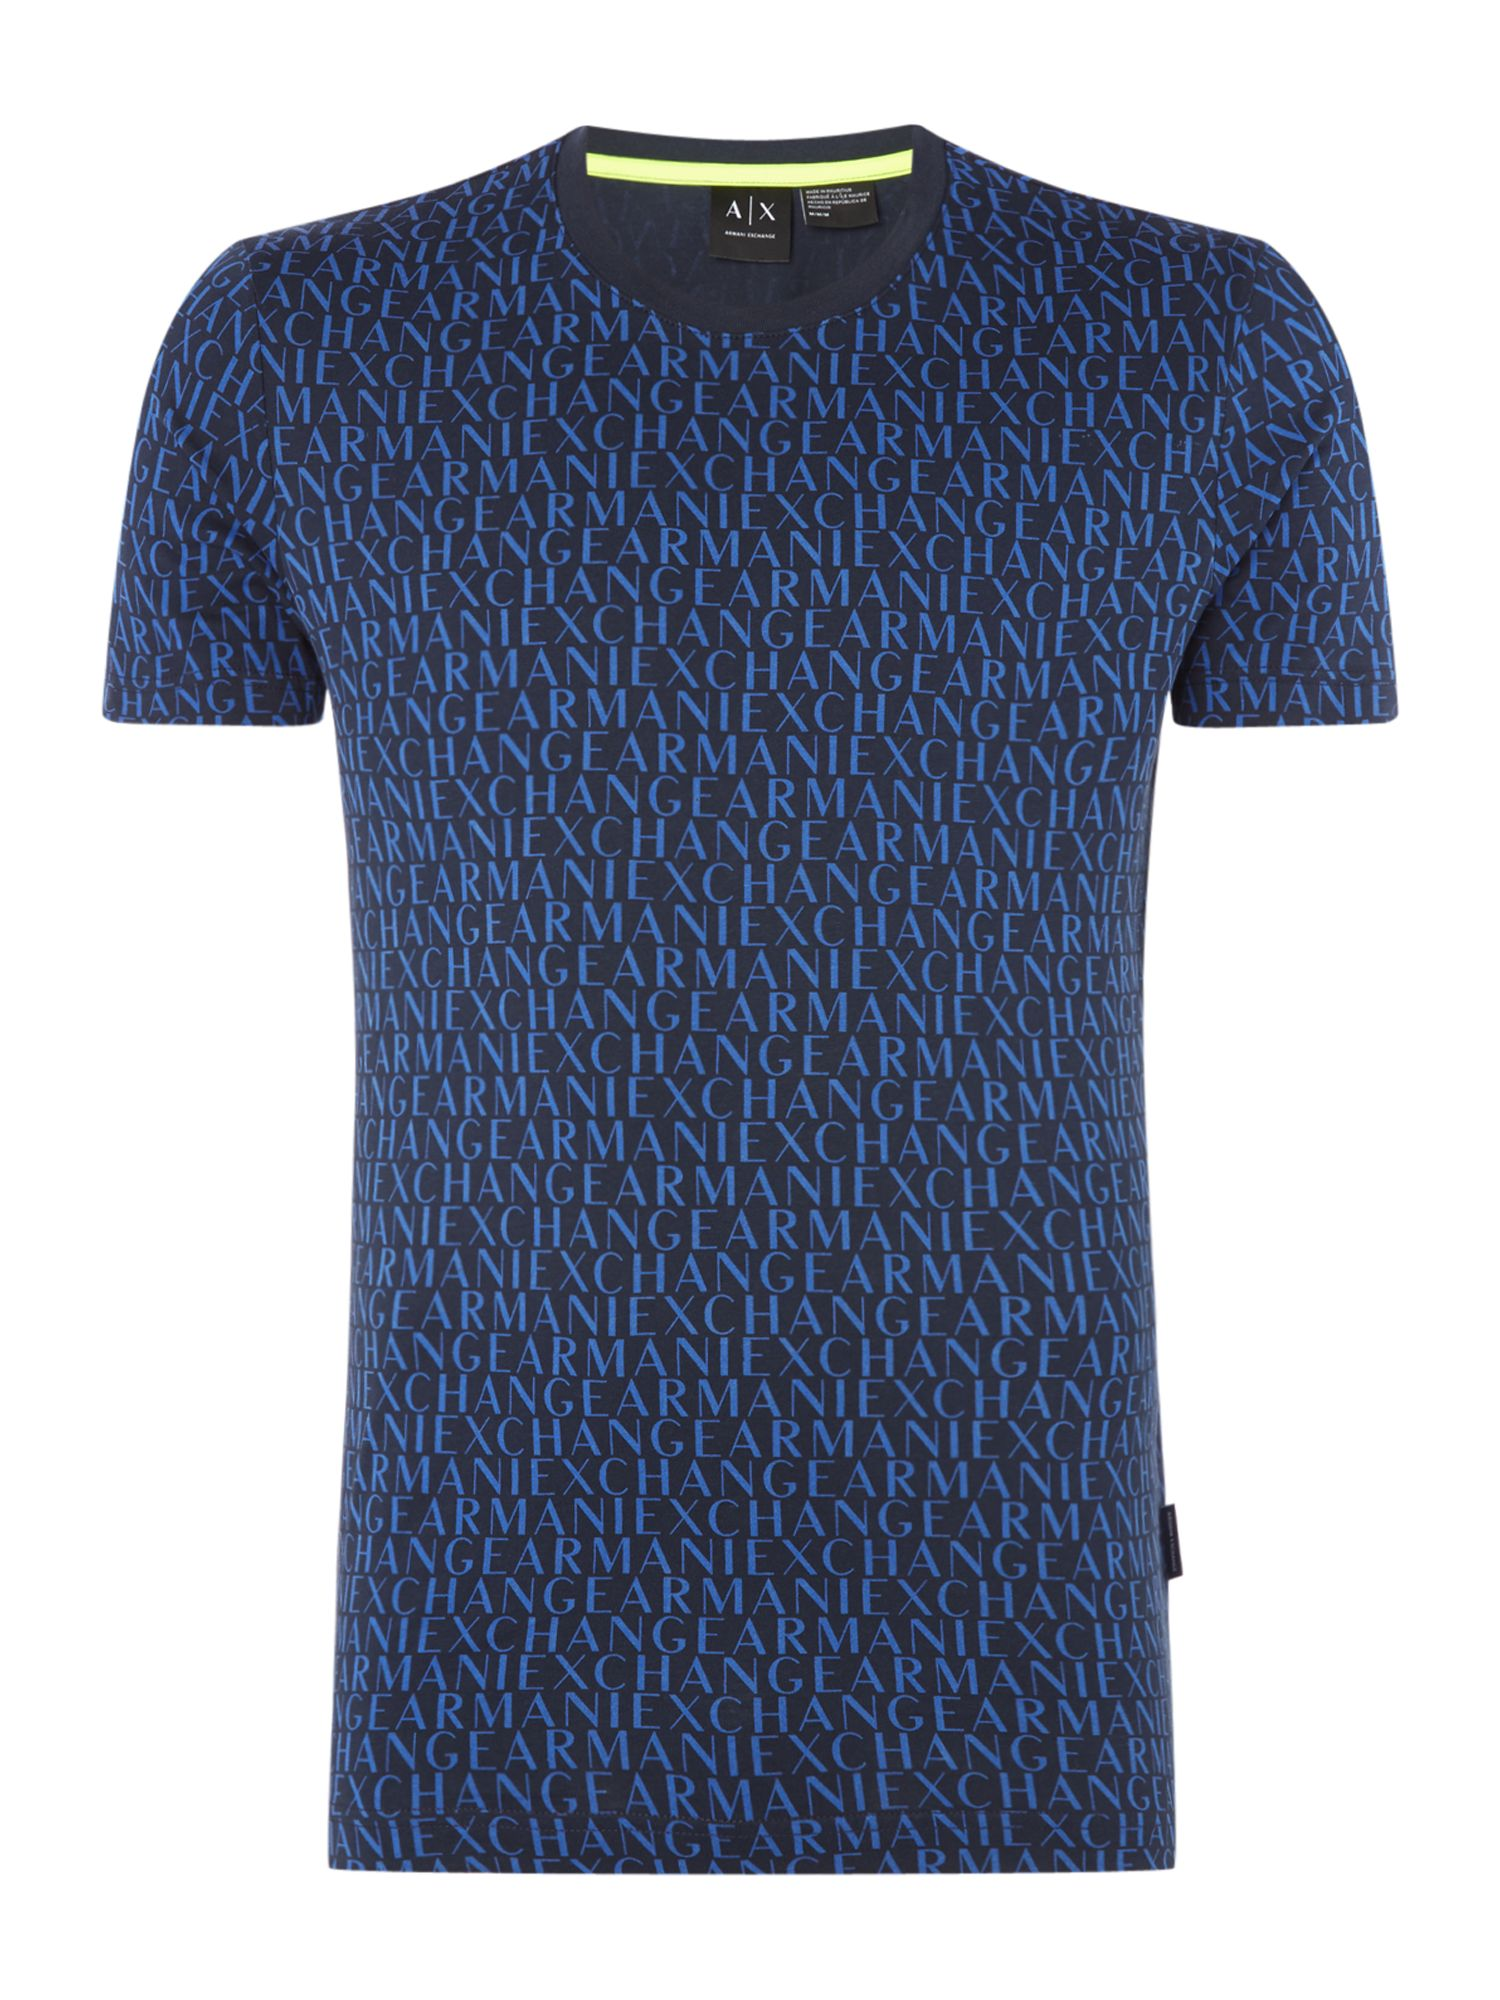 Men's Armani Exchange All Over Logo Print Tshirt, Blue